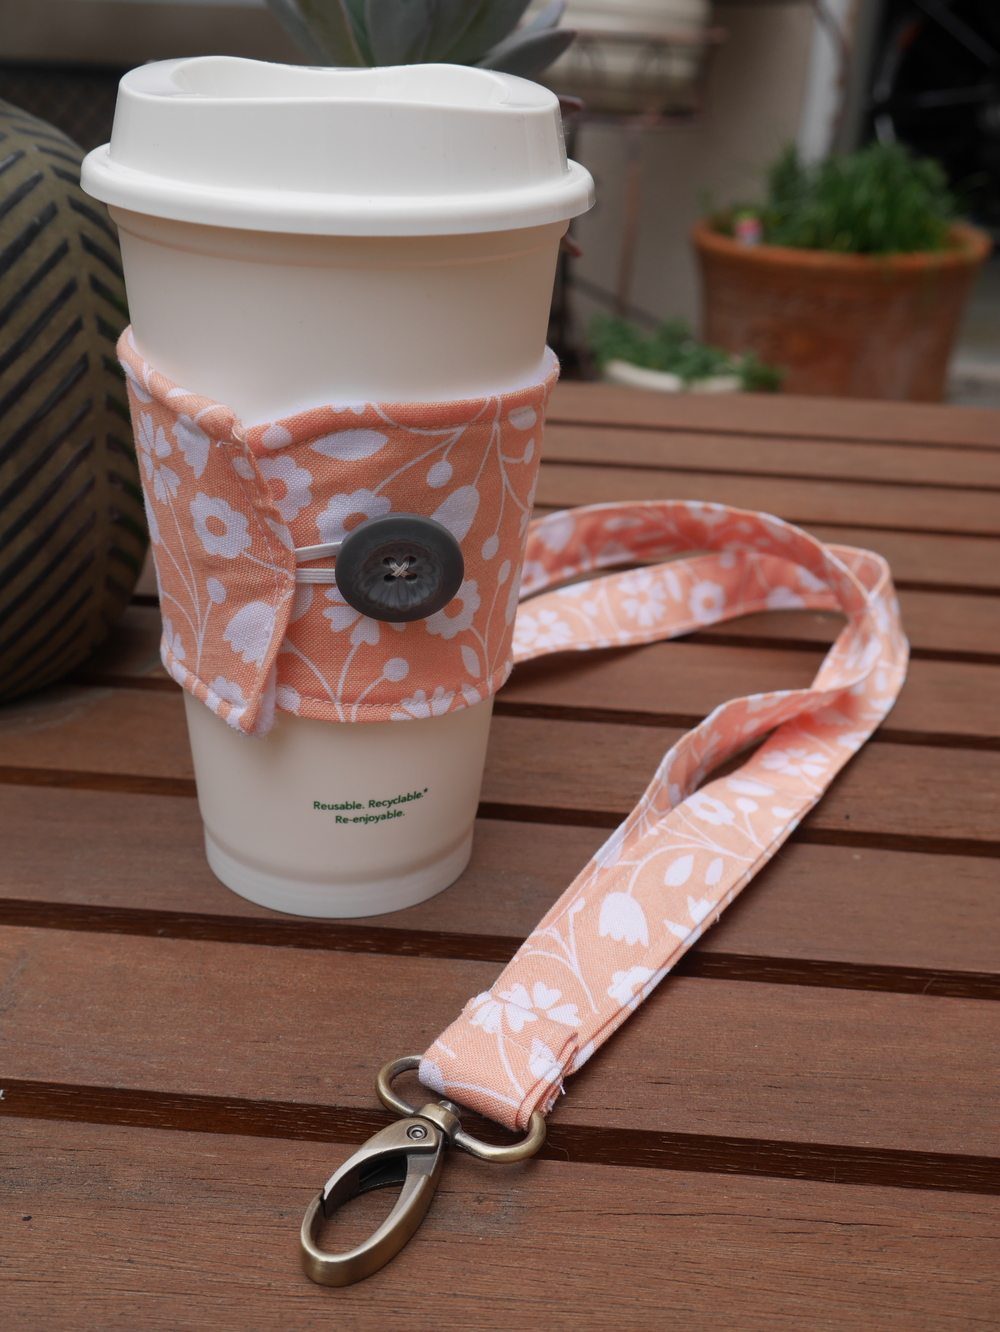 Lanyard and Coffee Koozie, a gift for a teacher friend